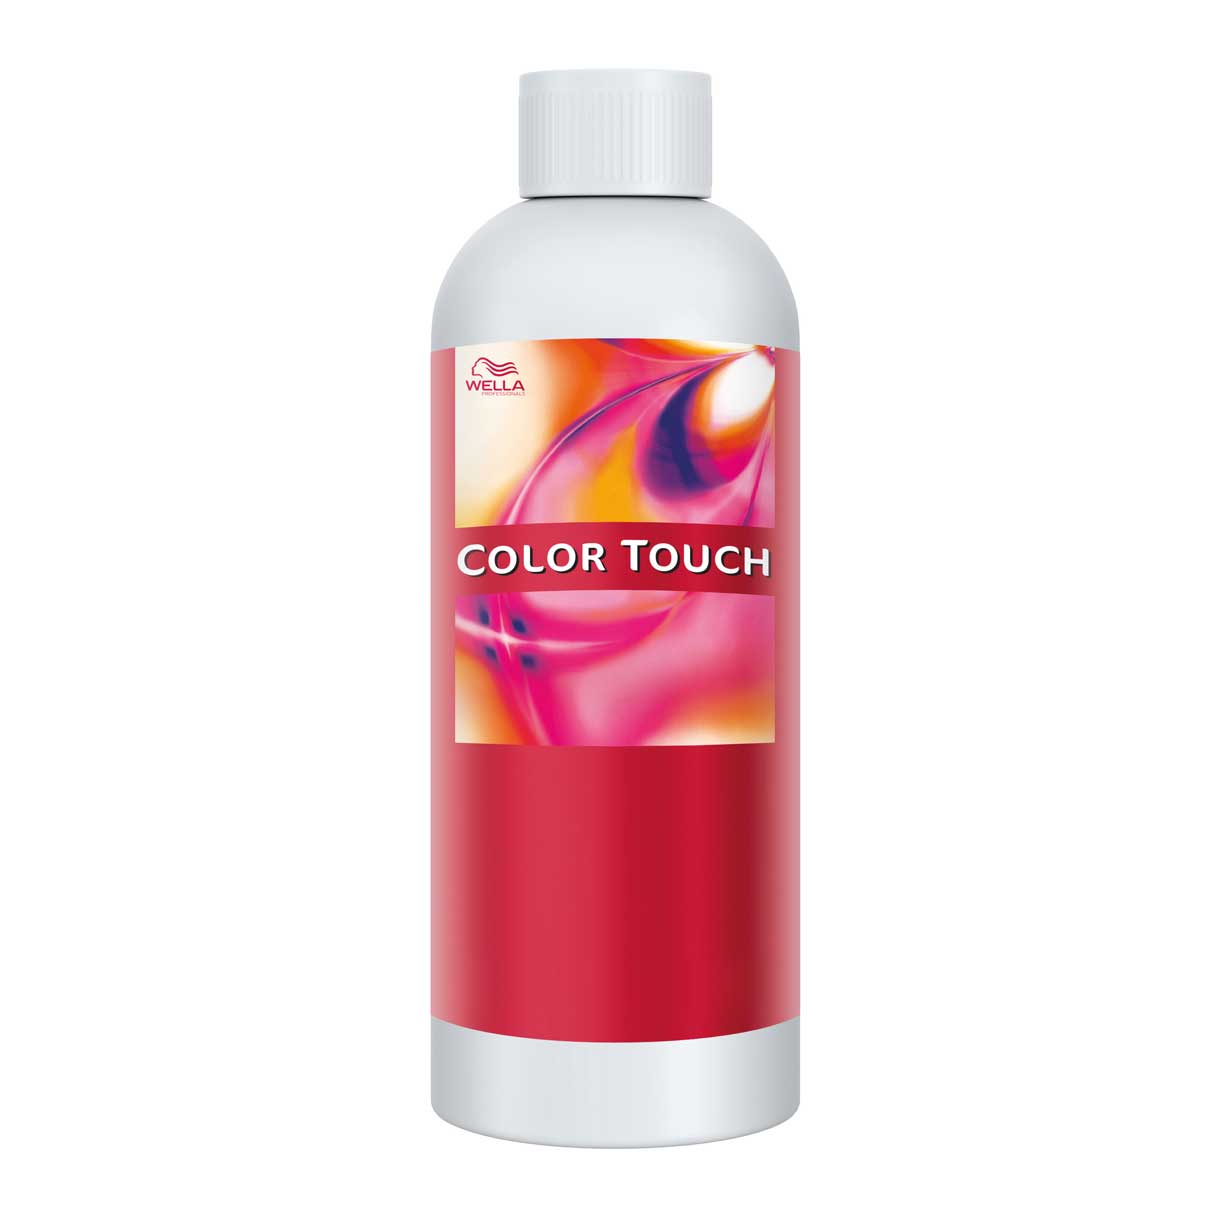 Wella Professionals Color Touch Emulsão 4% 13 Vol 120ml